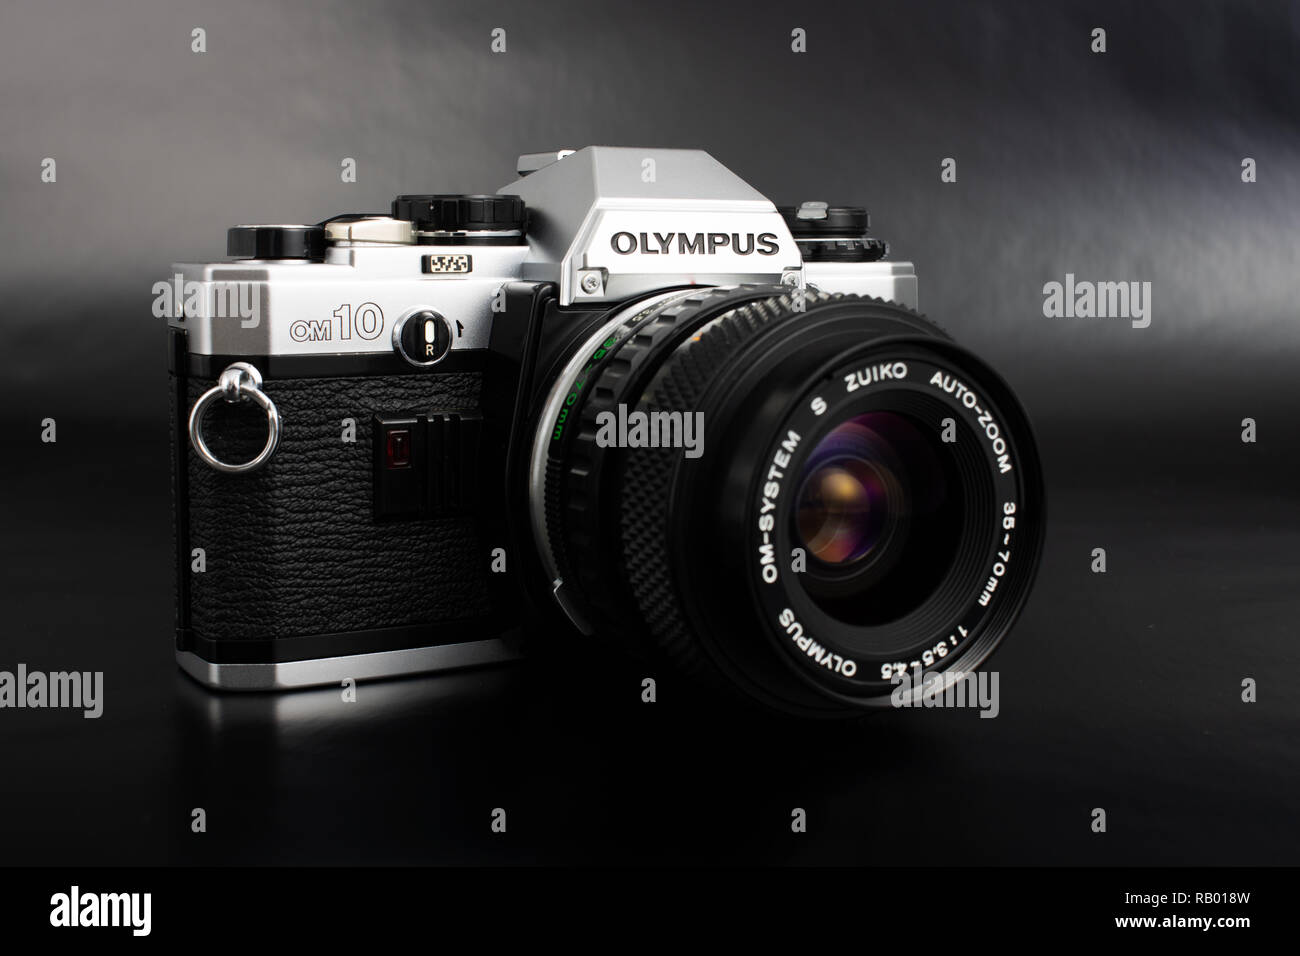 Prague, CZECH REPUBLIC - JANUARY 02, 2019: Olympus OM-10 is a 35mm film camera, launched by Olympus Corporation in June 1979, laid on dark background - Stock Image